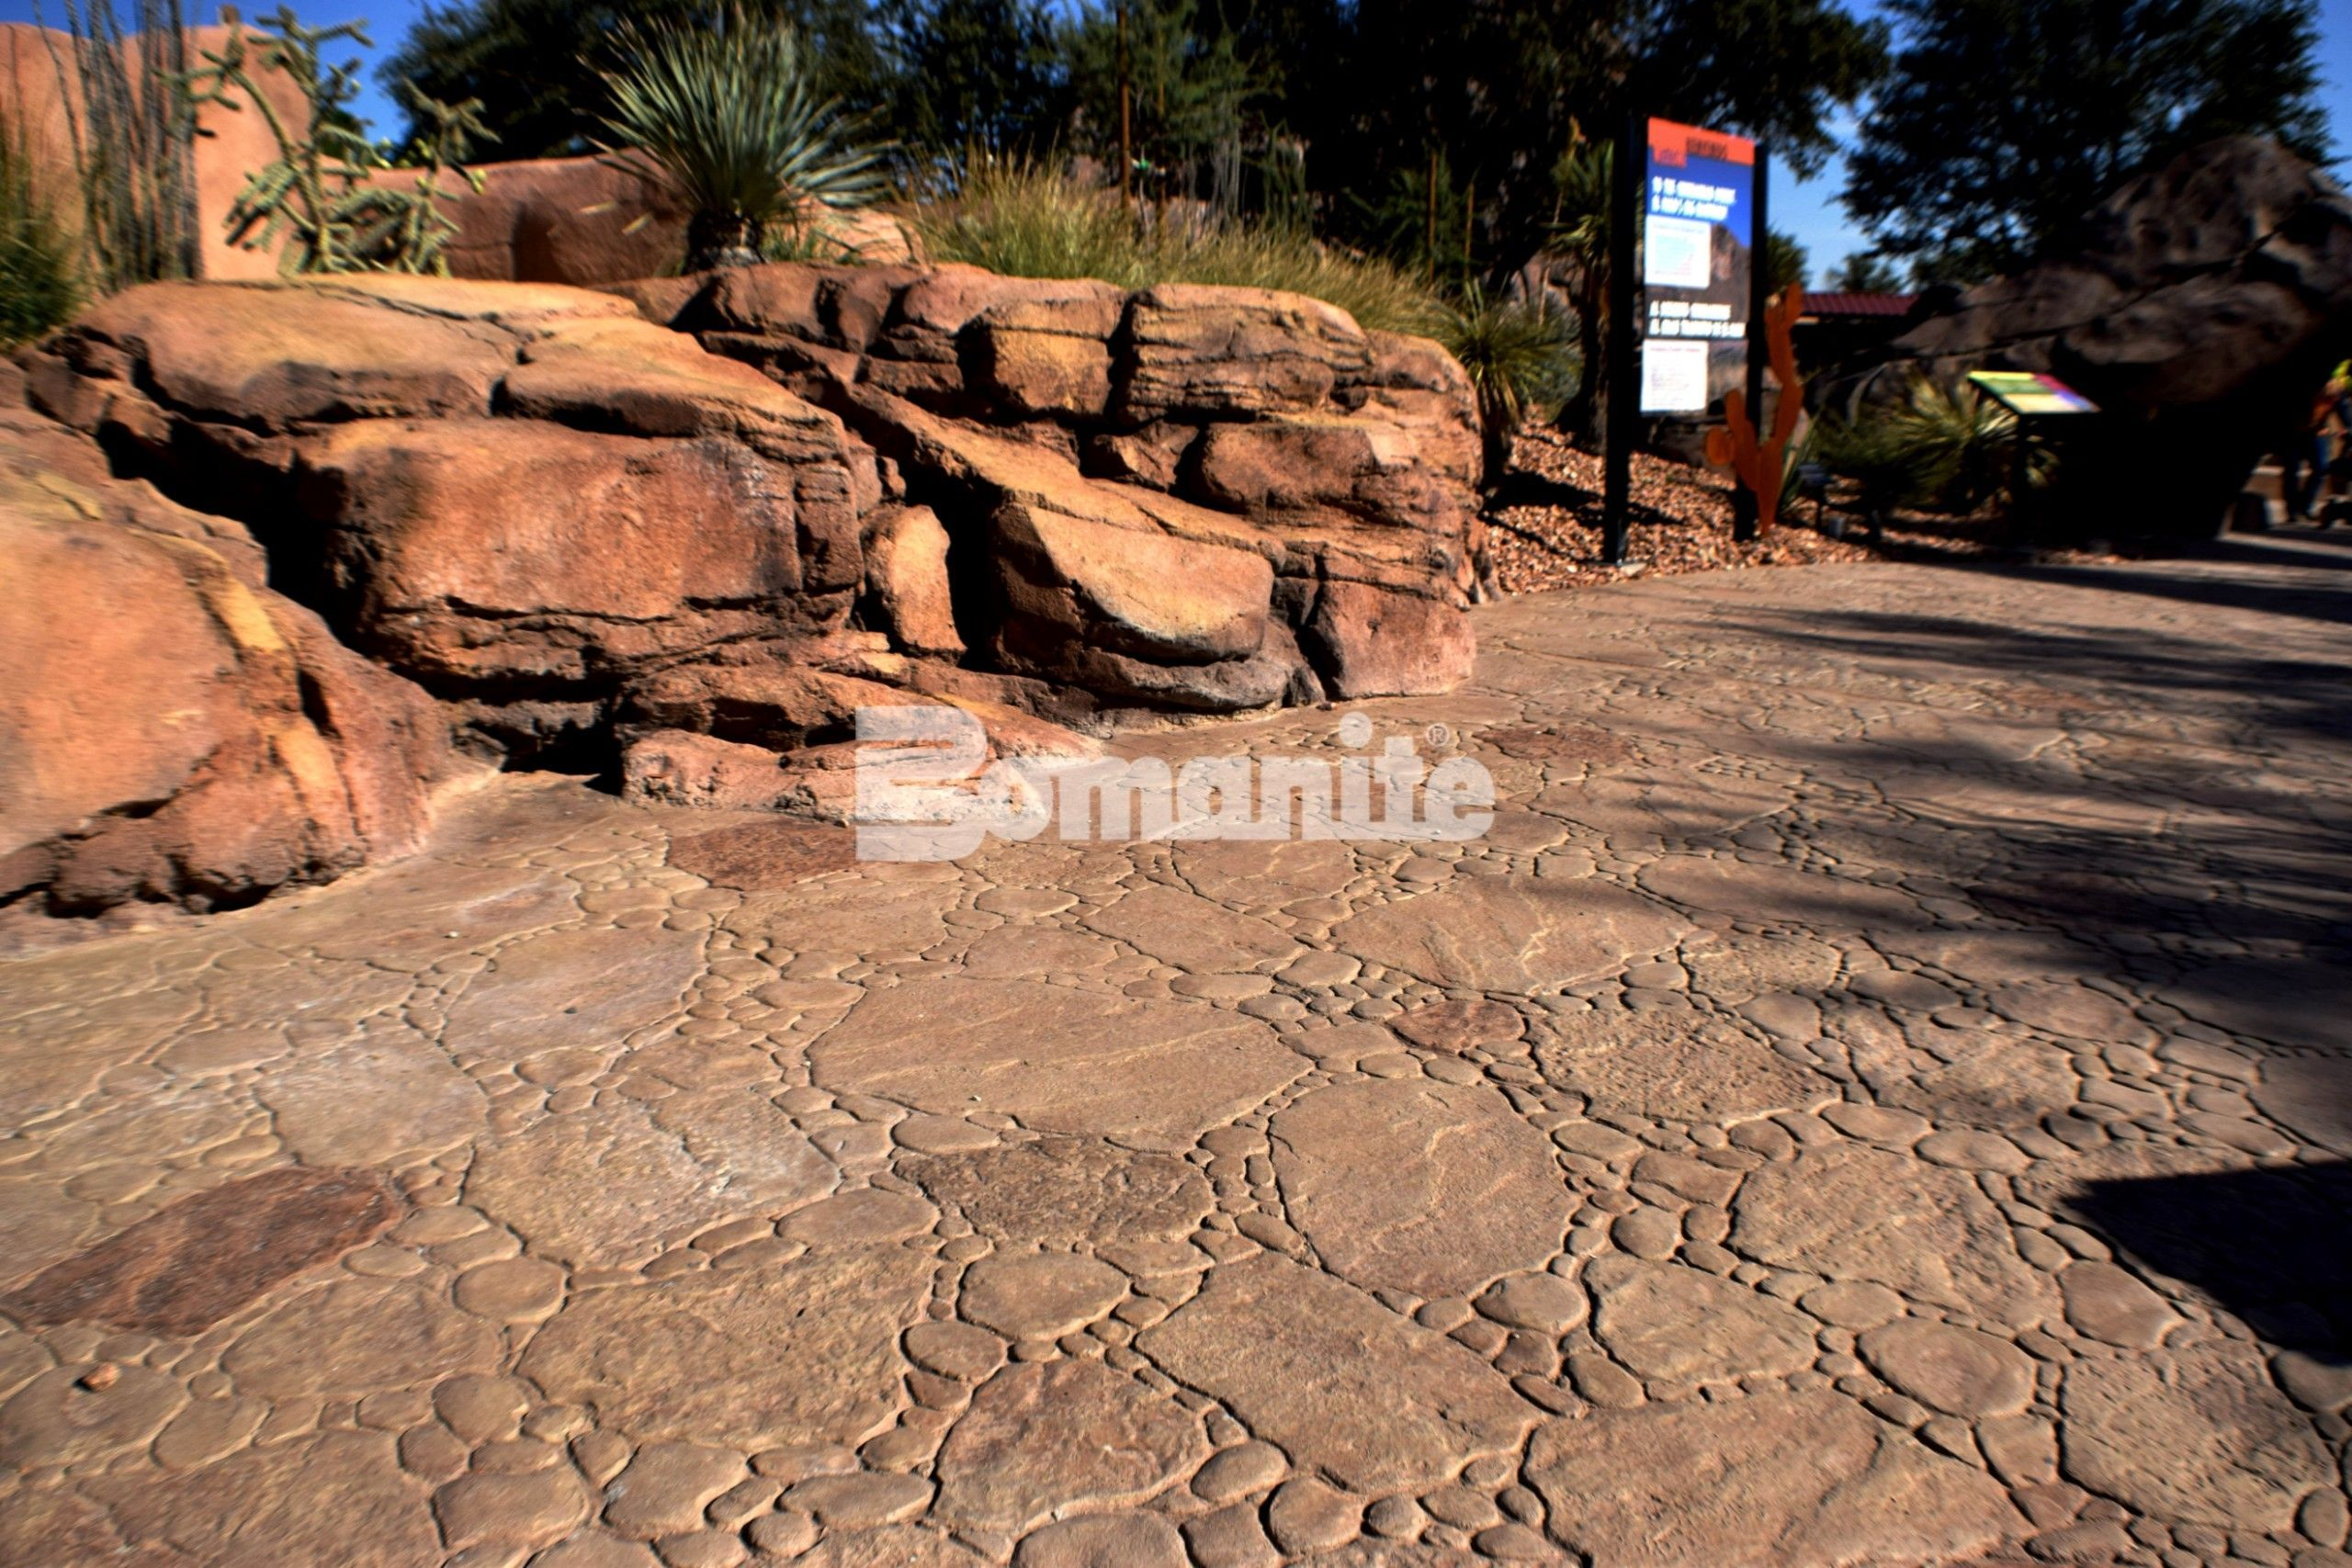 View of the path and boulders created using Bomanite Imprint Systems to create a native habitat at the El Paso Zoo Chihuahuan Desert Exhibit installed by Bomanite Artistic Concrete & Pools.